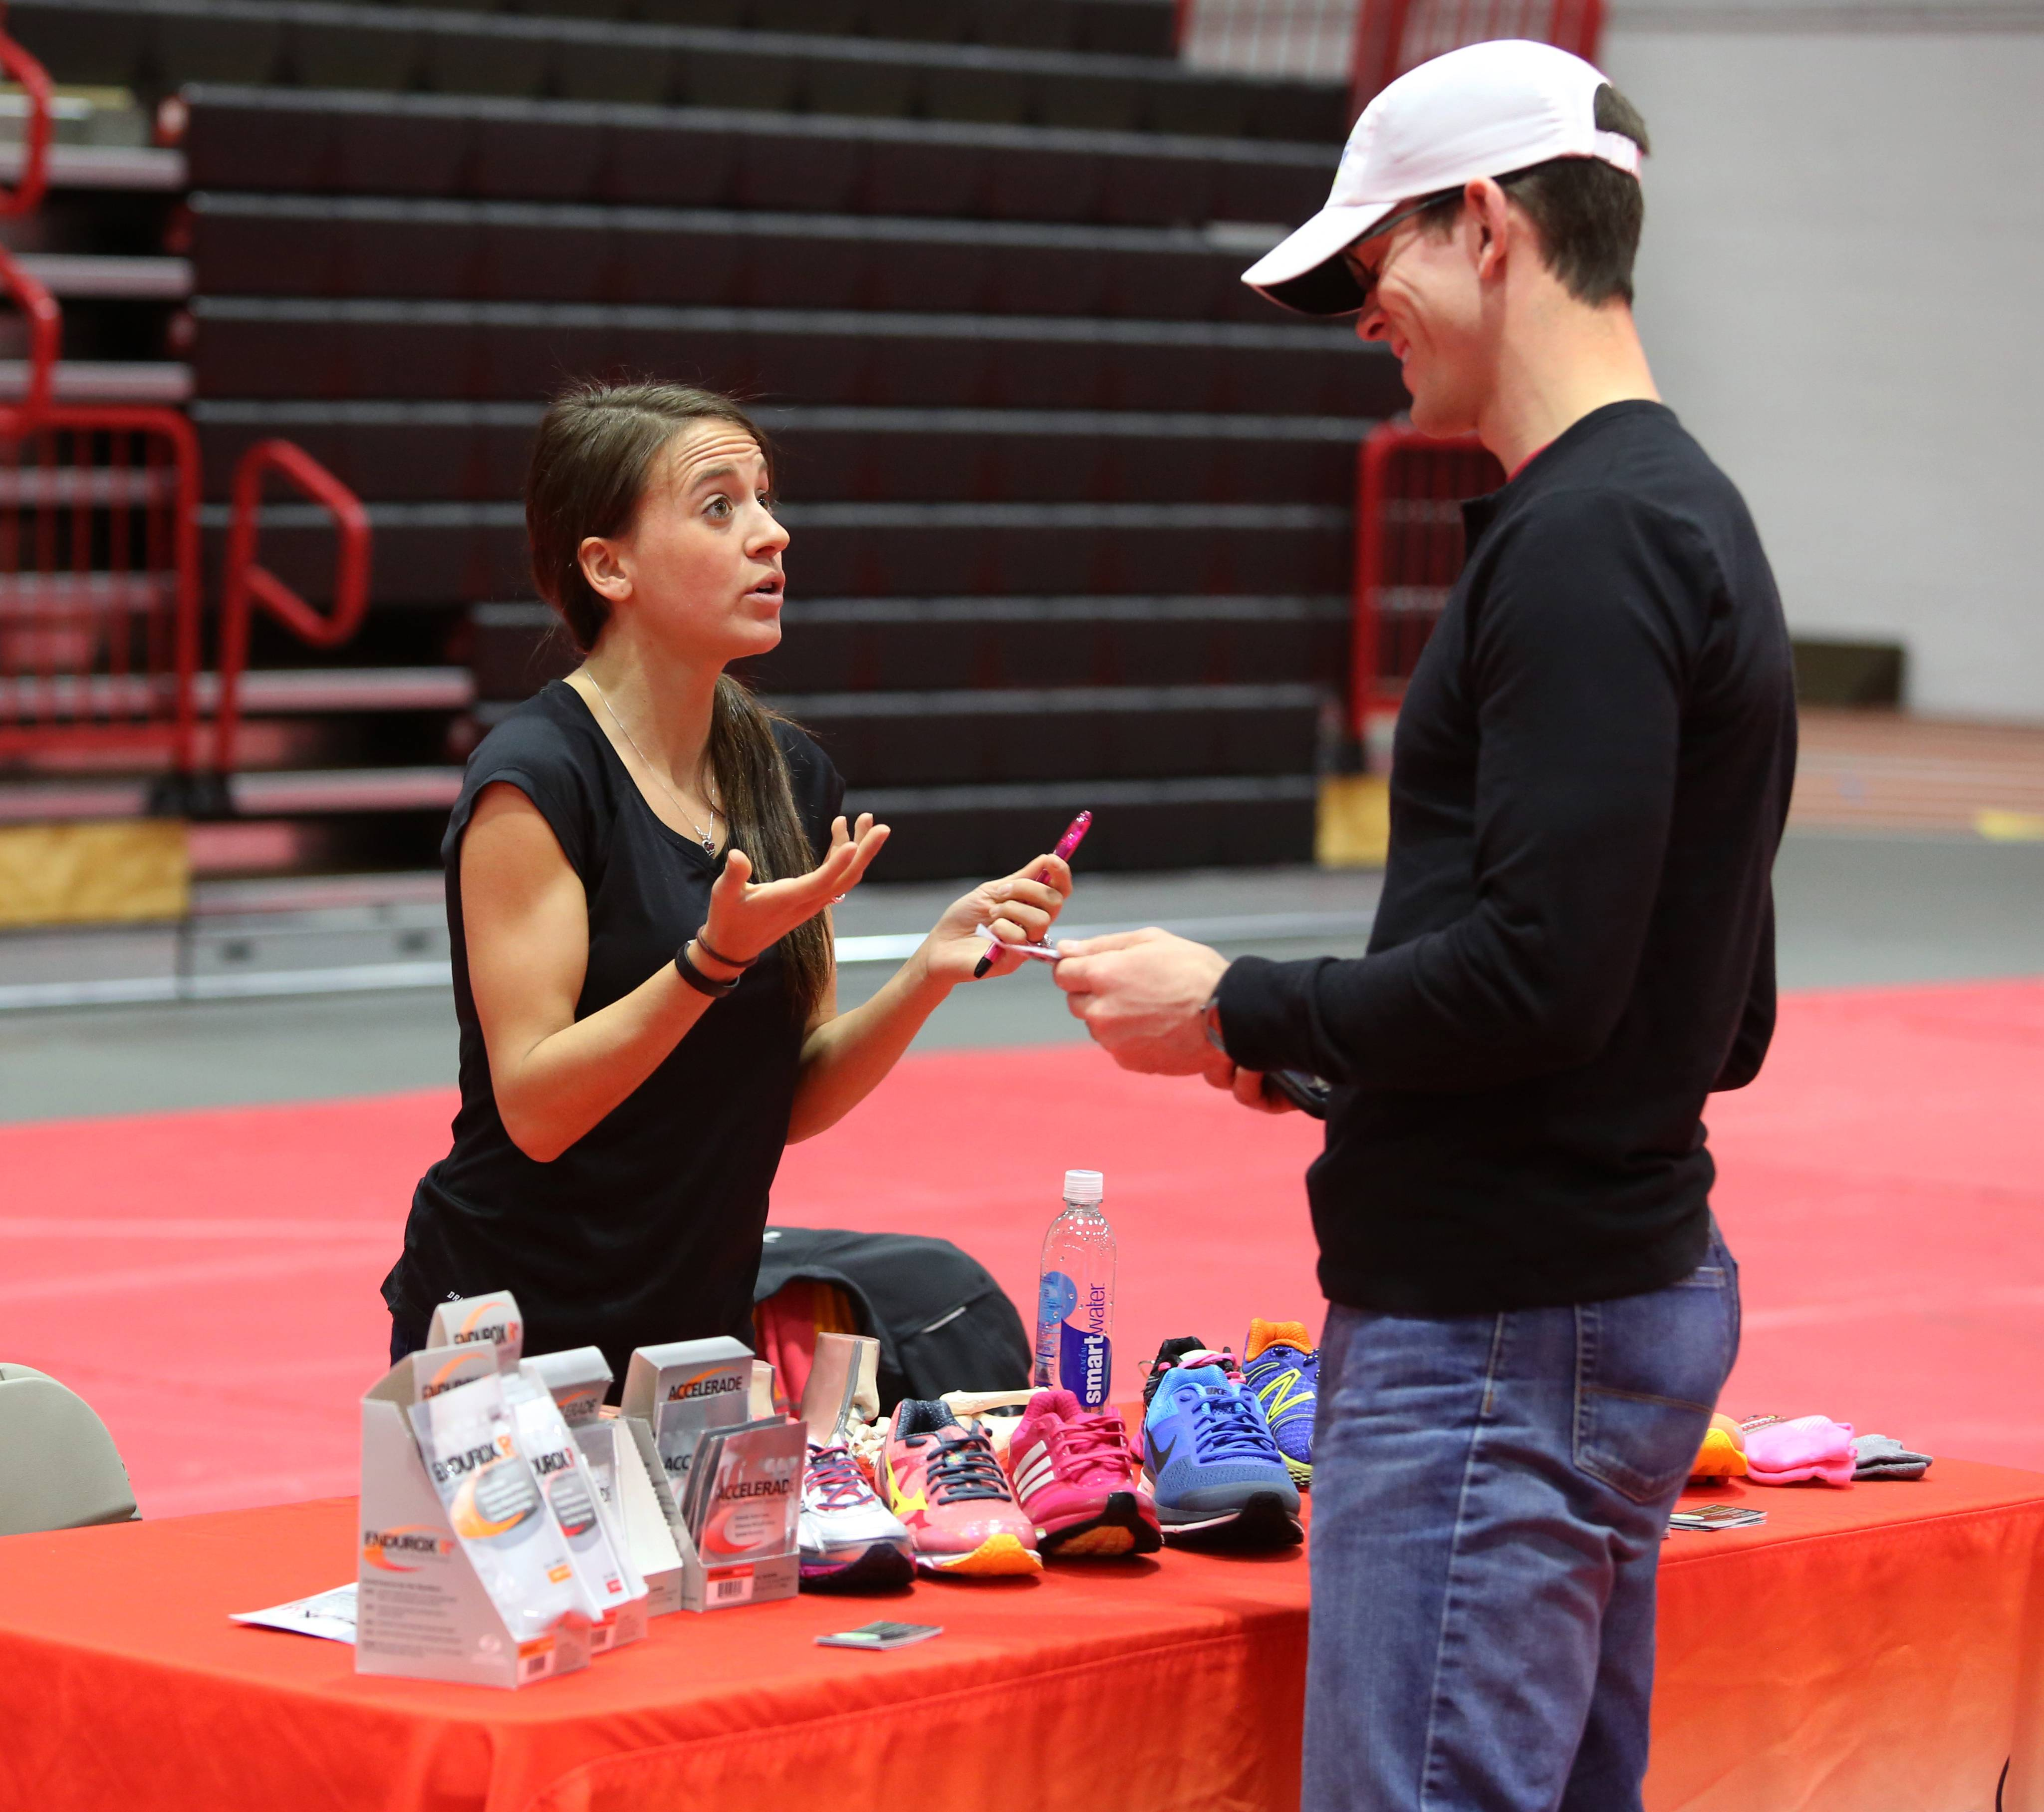 Marisa Hird of Naperville Running talks with running coach Seth Kopf of Lake in the Hills during a runners symposium hosted by Athletico at North Central College.